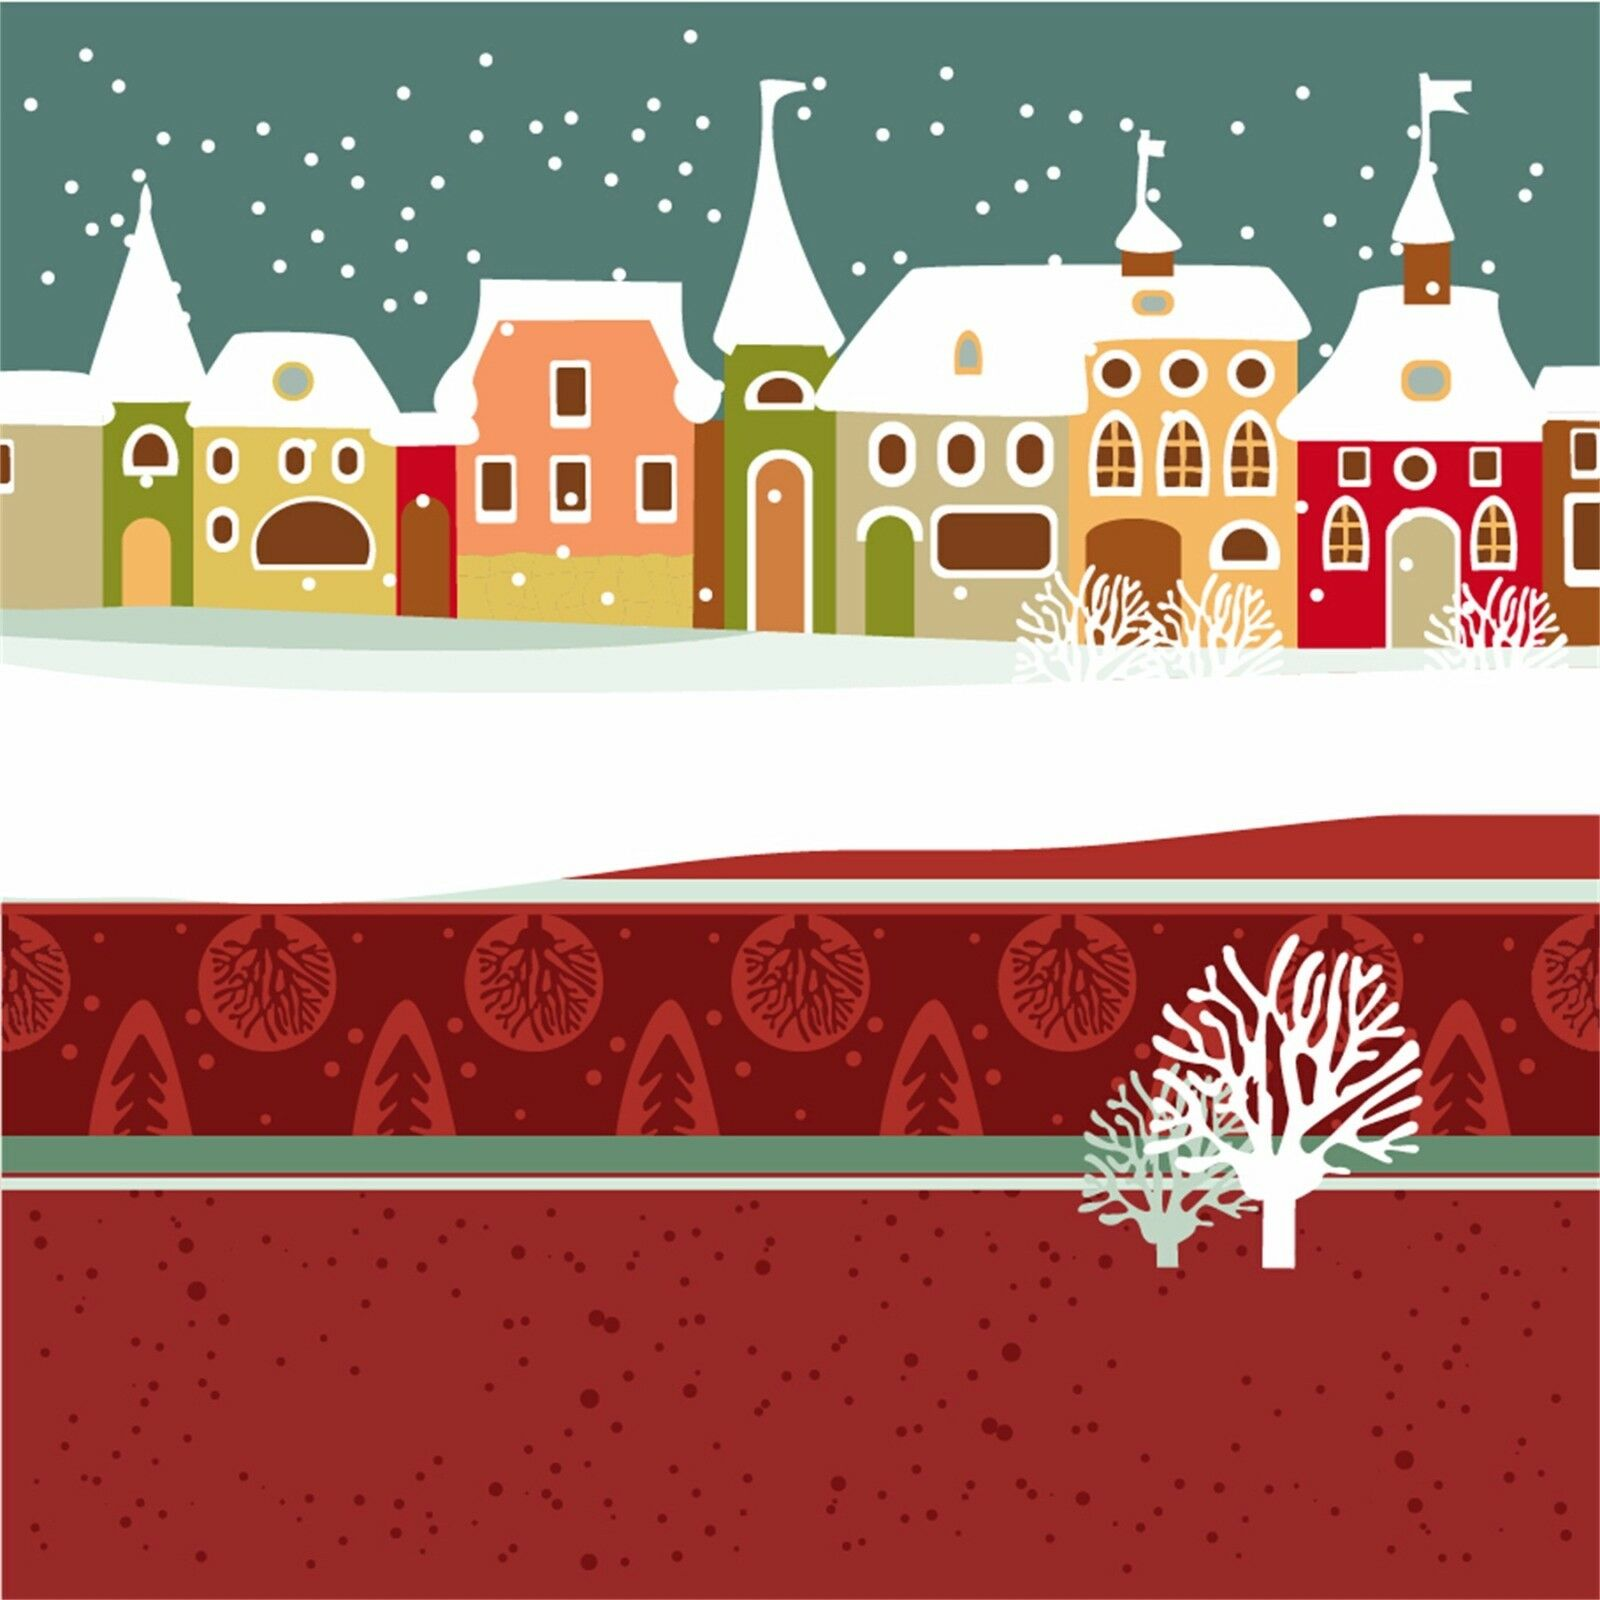 3D 3D 3D Christmas Snow View 7 Wallpaper Mural Paper Wall Print Wallpaper Murals Lemon 144c4a